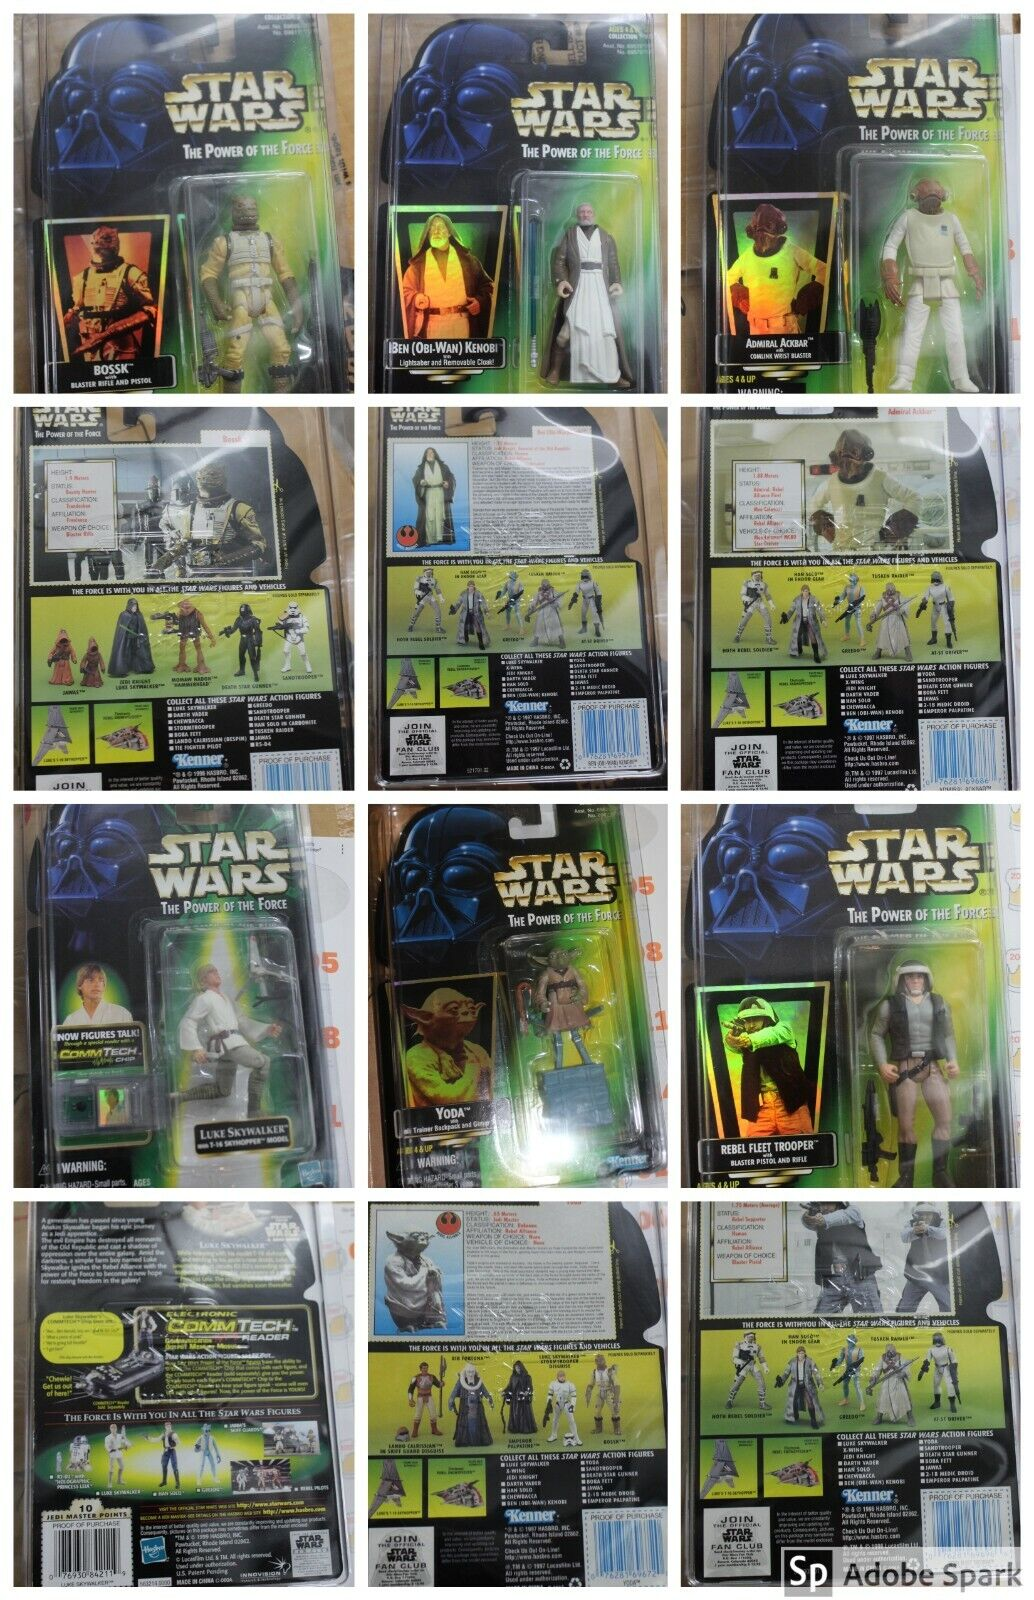 HUGE estrella guerras POTF  POTJ POTF2 cifras lot of nuovo ON autoD w gratuito CASES - 25 Figs  una marca di lusso